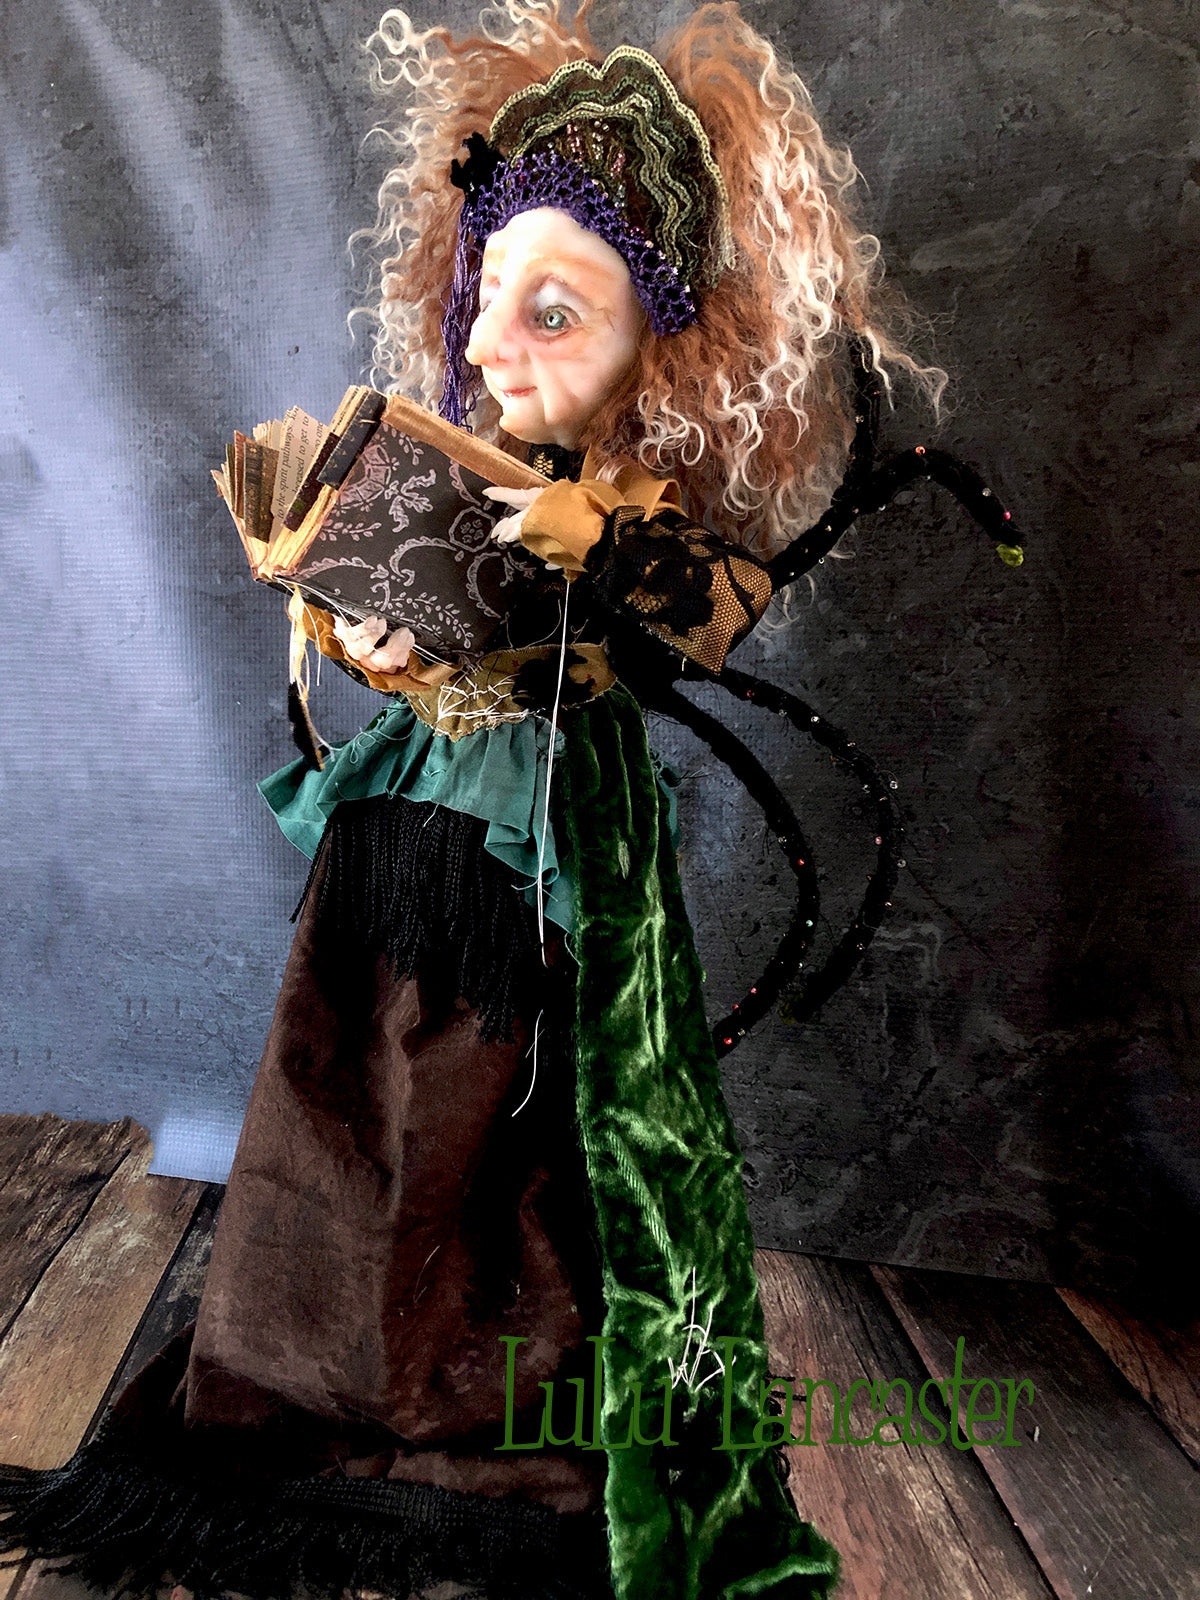 Granny Spindra the Arachnid Witch Original Art Doll by LuLu Lancaster